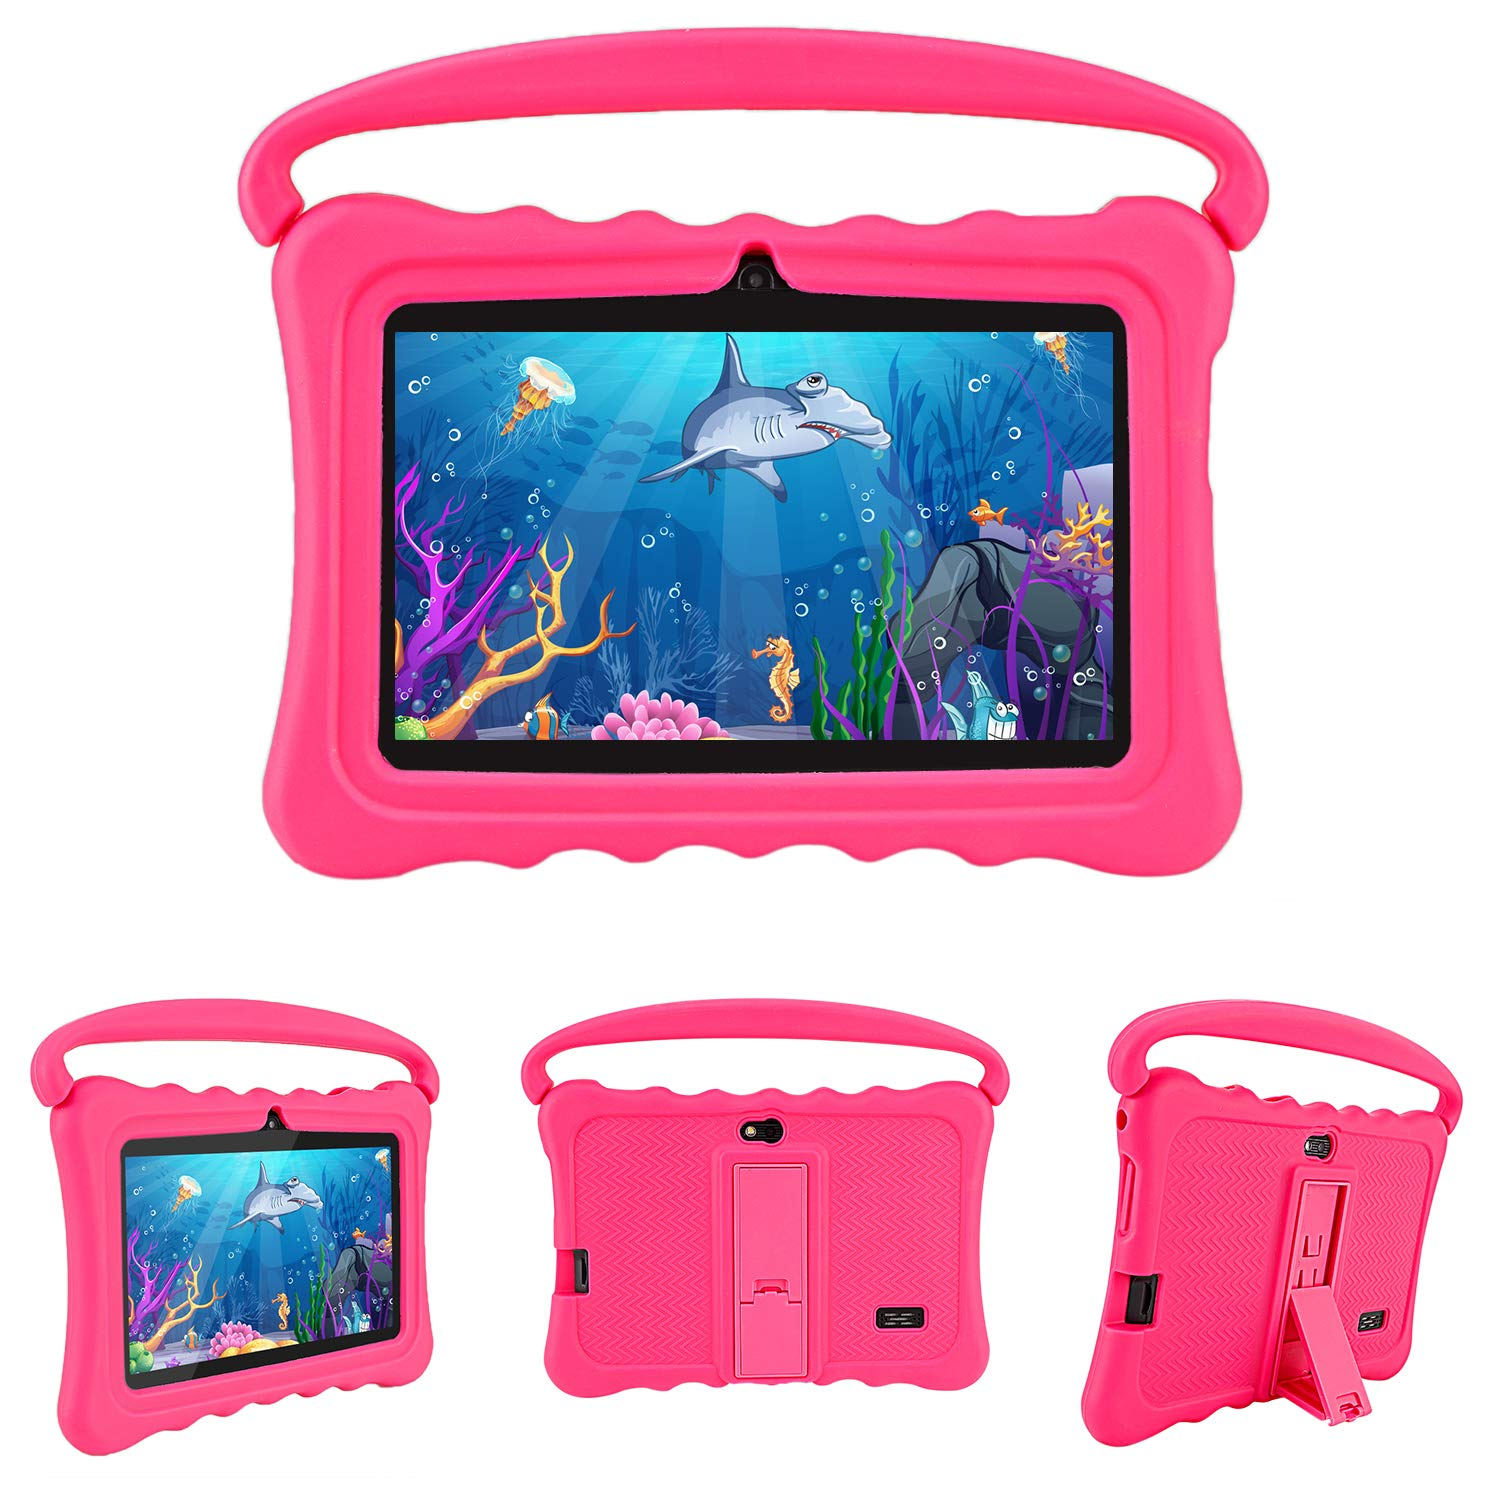 "Kids Tablet PC, Veidoo Quad Core, 1GB RAM 8GB ROM, 7"" IPS Display, Kid-Friendly iWawa APP, Child-Proof Case with Handle and Kickstand, Best Gift Choice for Children (Pink)"